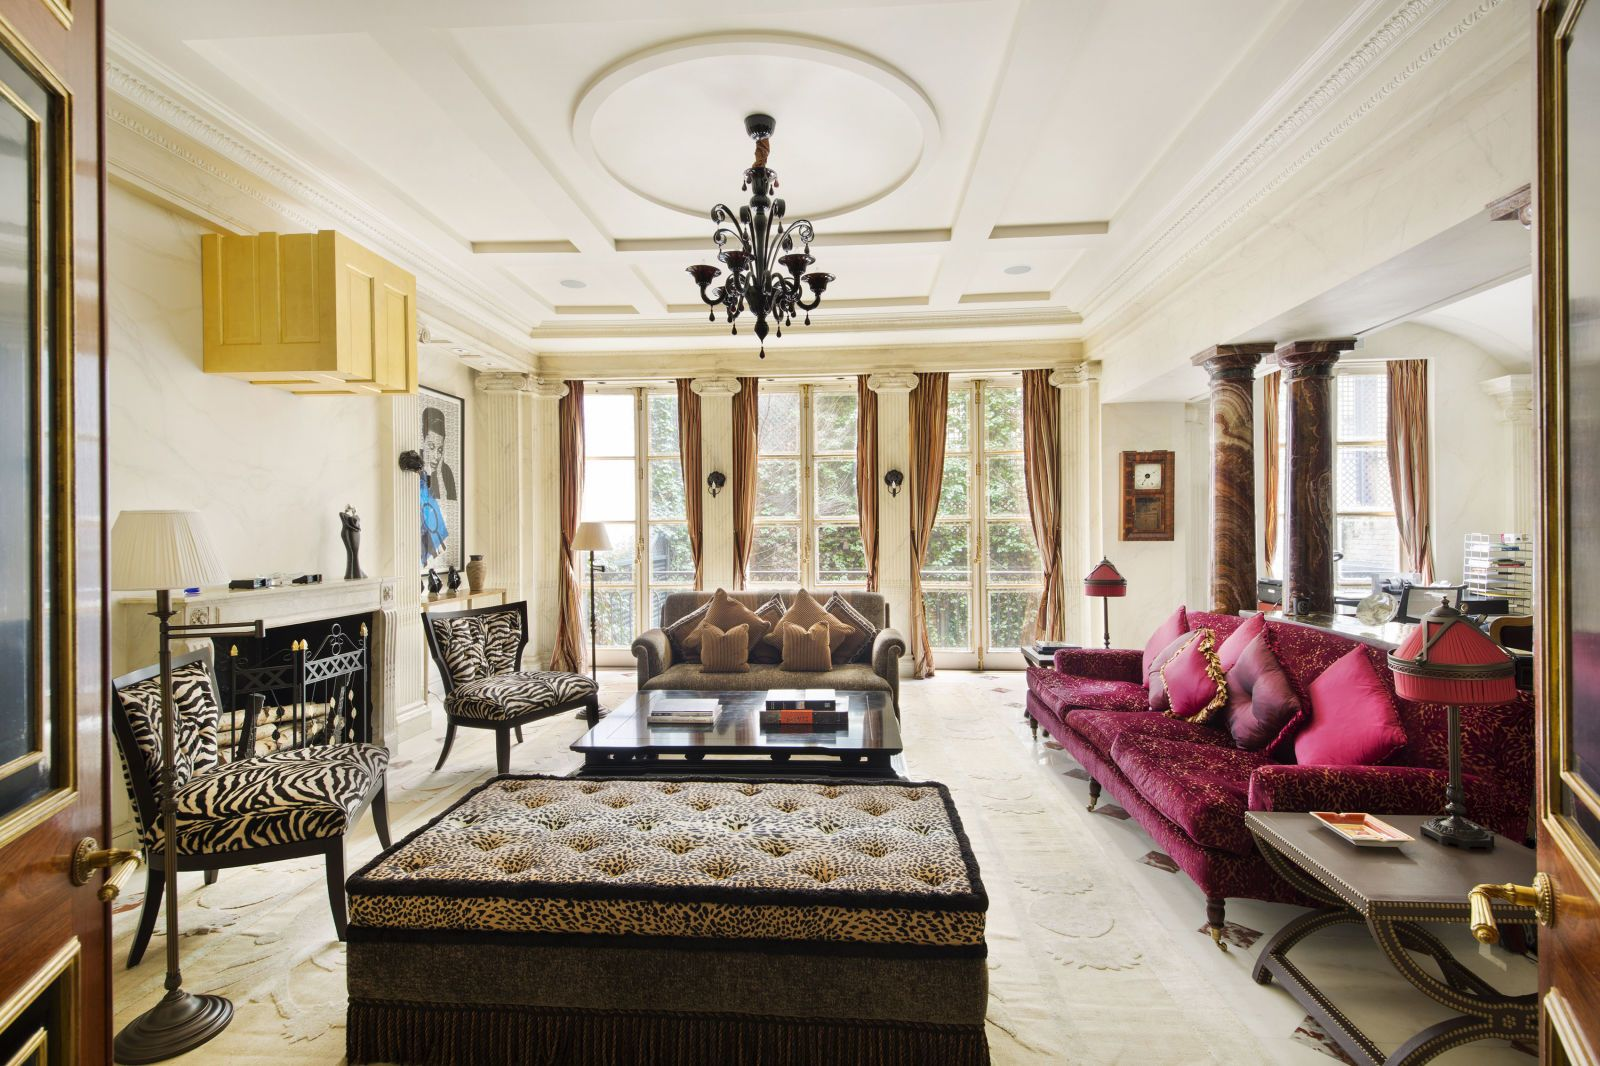 90s Miami Meets Renaissance Italy Inside Gianni Versaces Former New York Townhouse Living Room